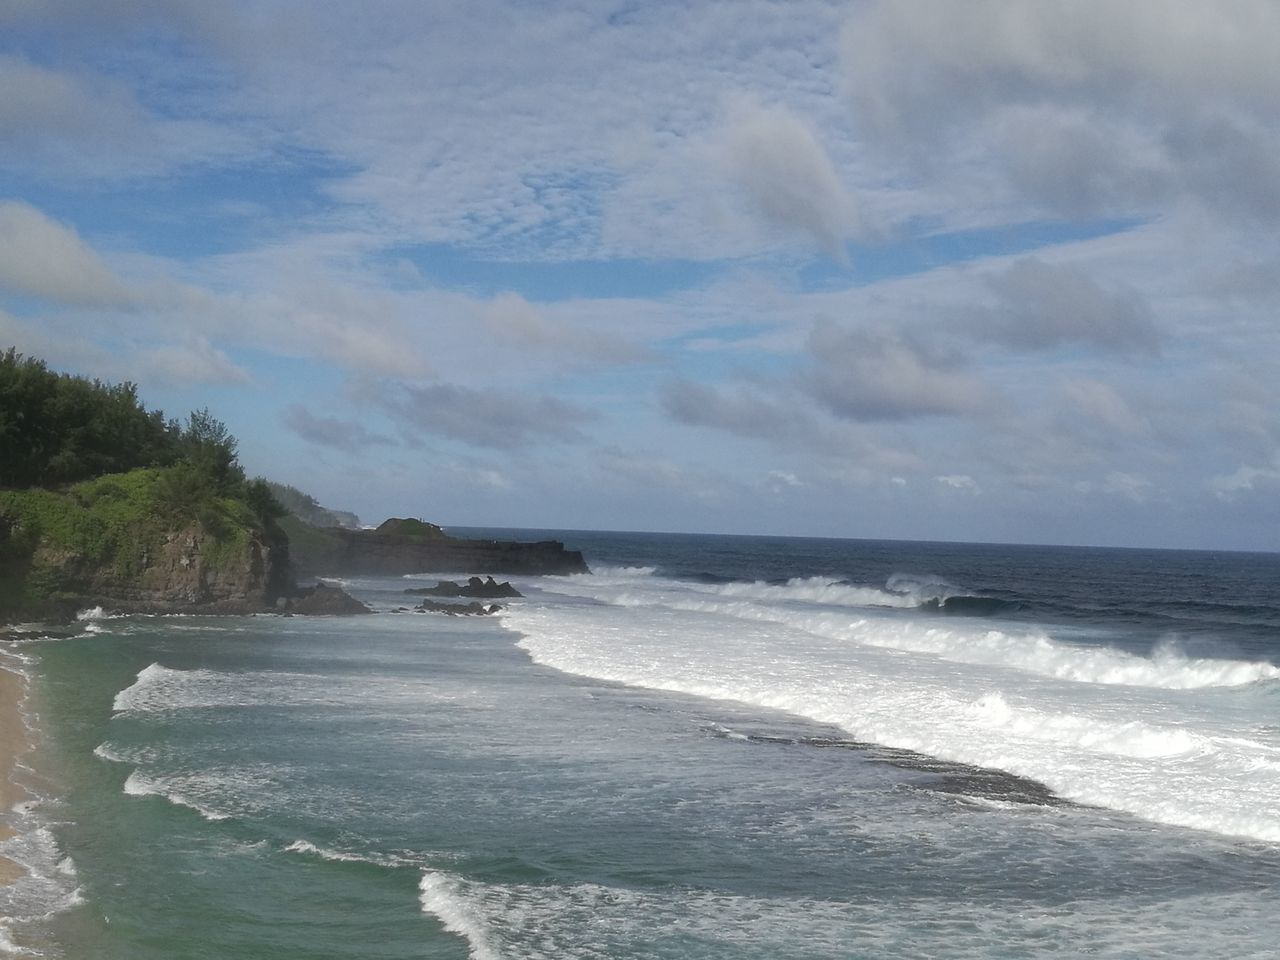 sea, wave, nature, water, sky, beauty in nature, beach, scenics, no people, motion, horizon over water, outdoors, day